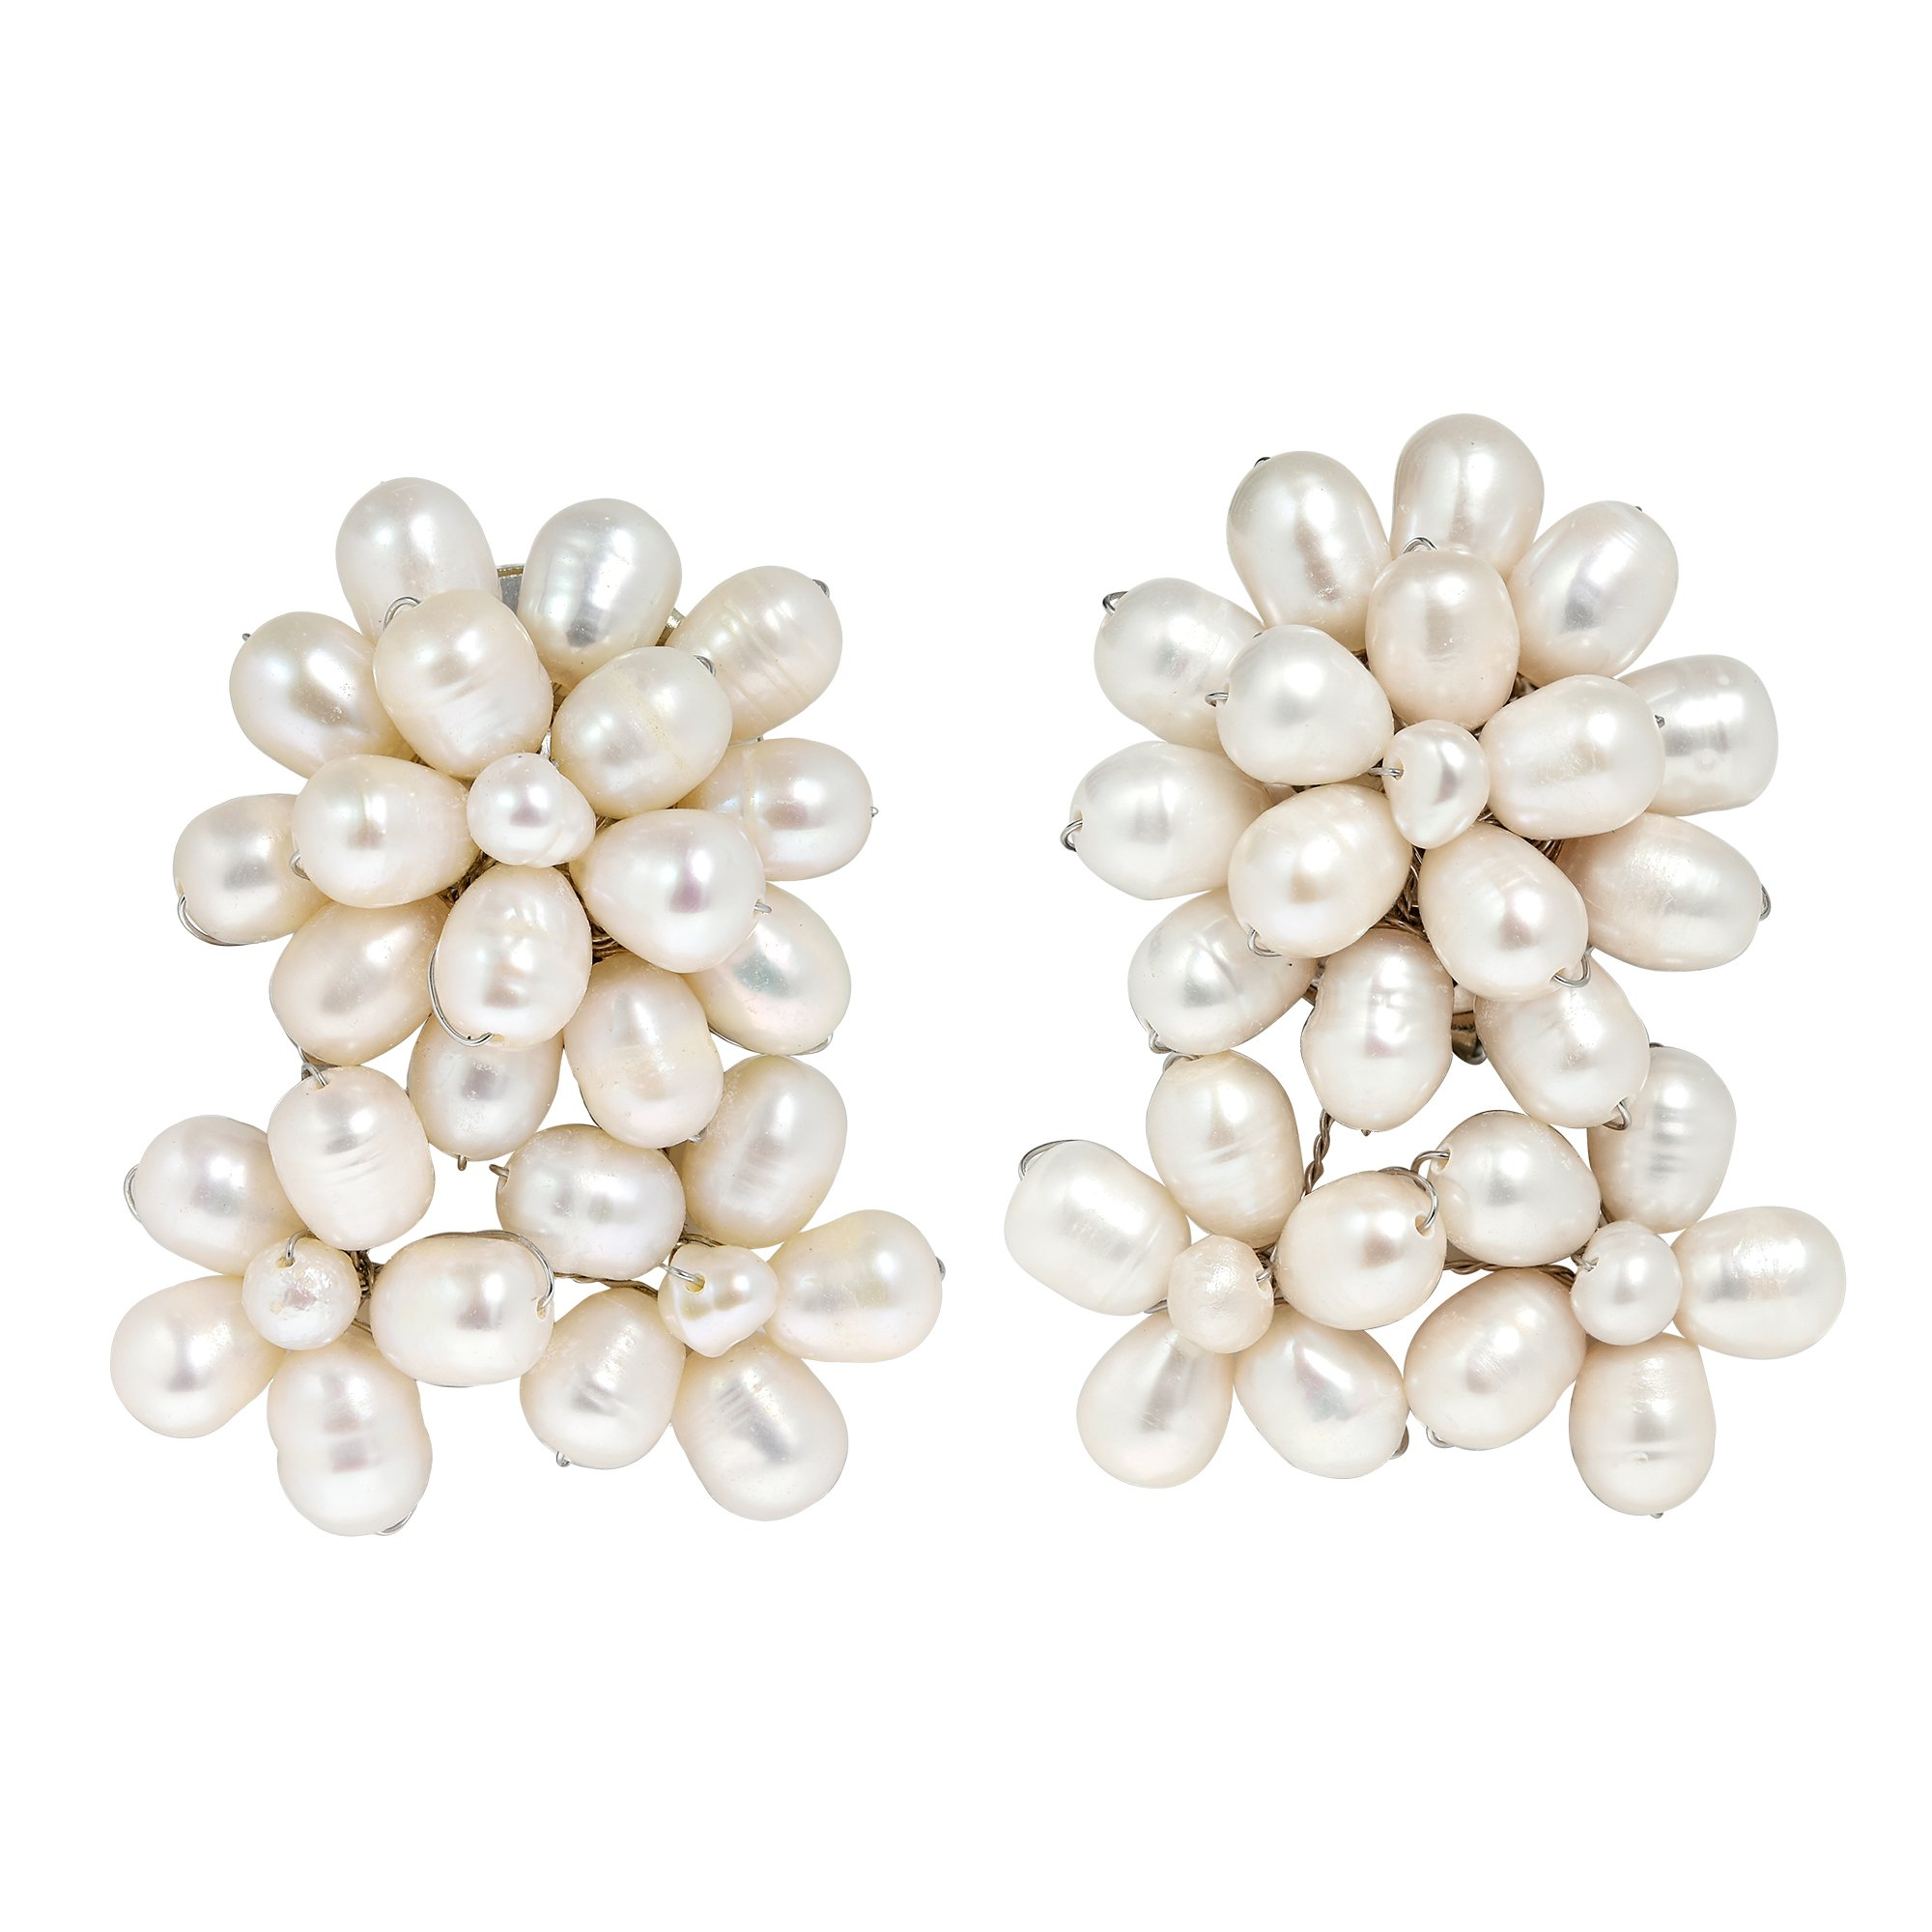 Blooming Floral Romance Cultured Freshwater White Pearl Clip On Earrings